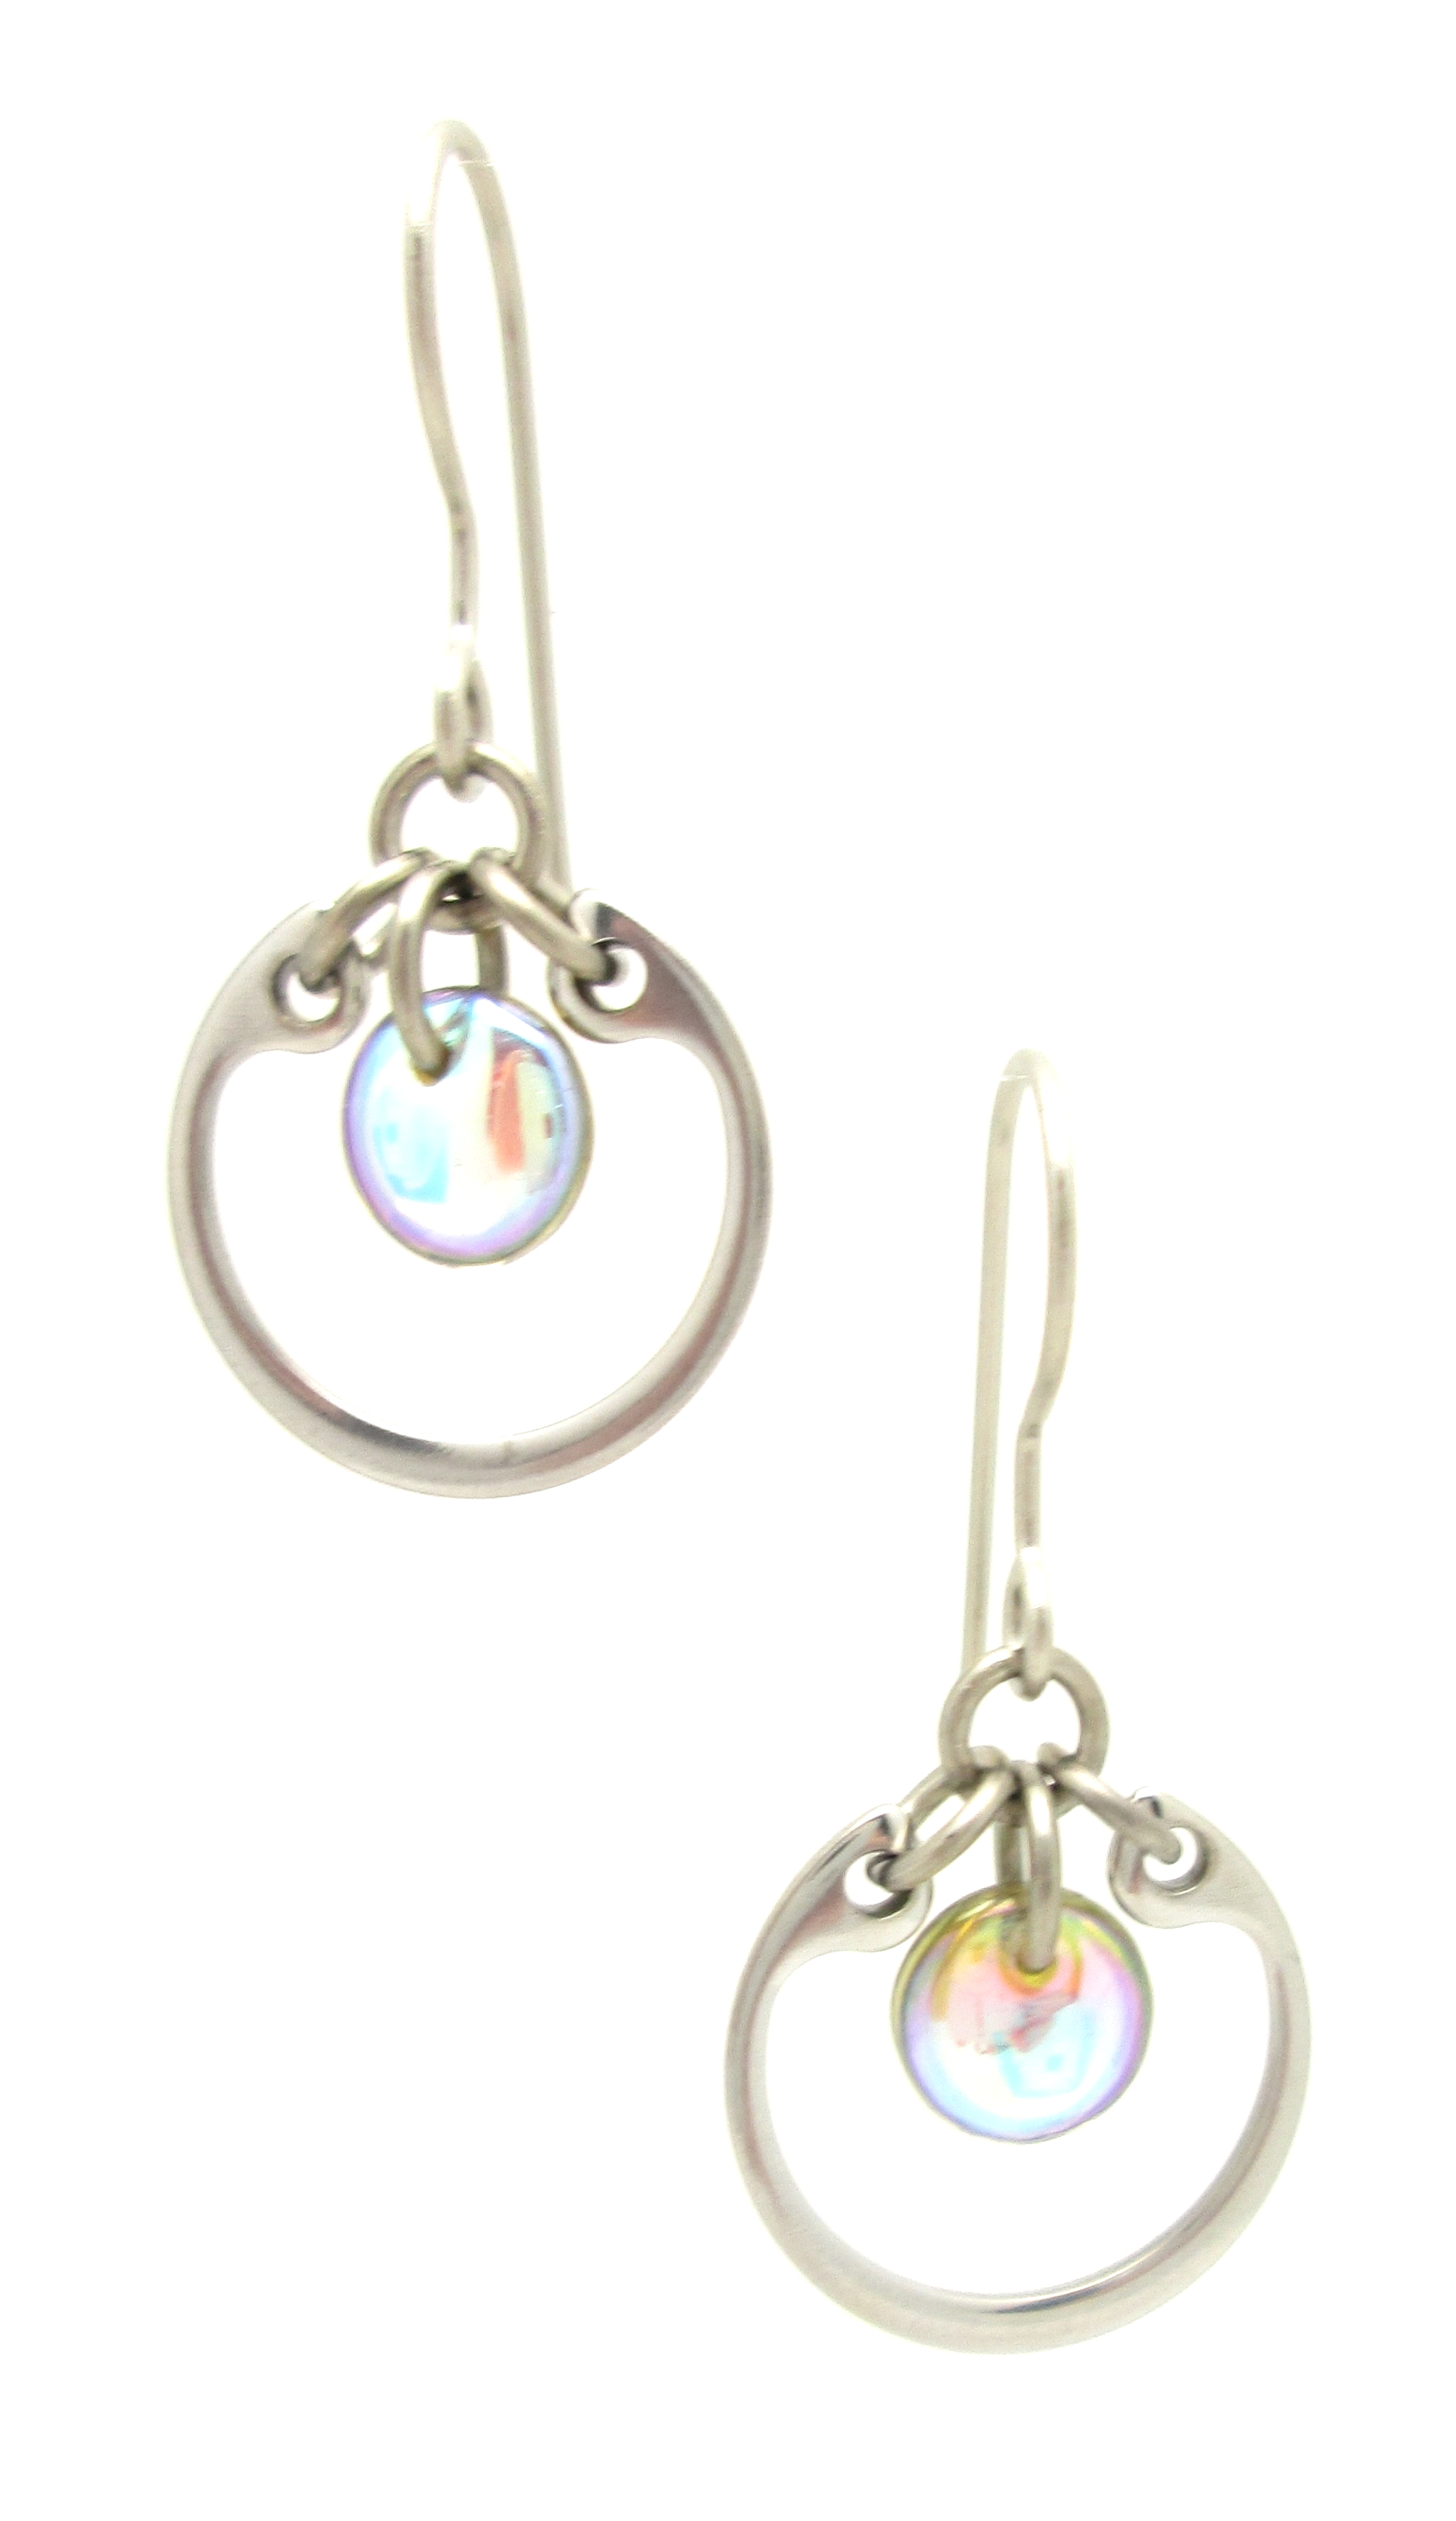 Wraptillion's silver-tone modern style small circle earrings in pale rainbow glass